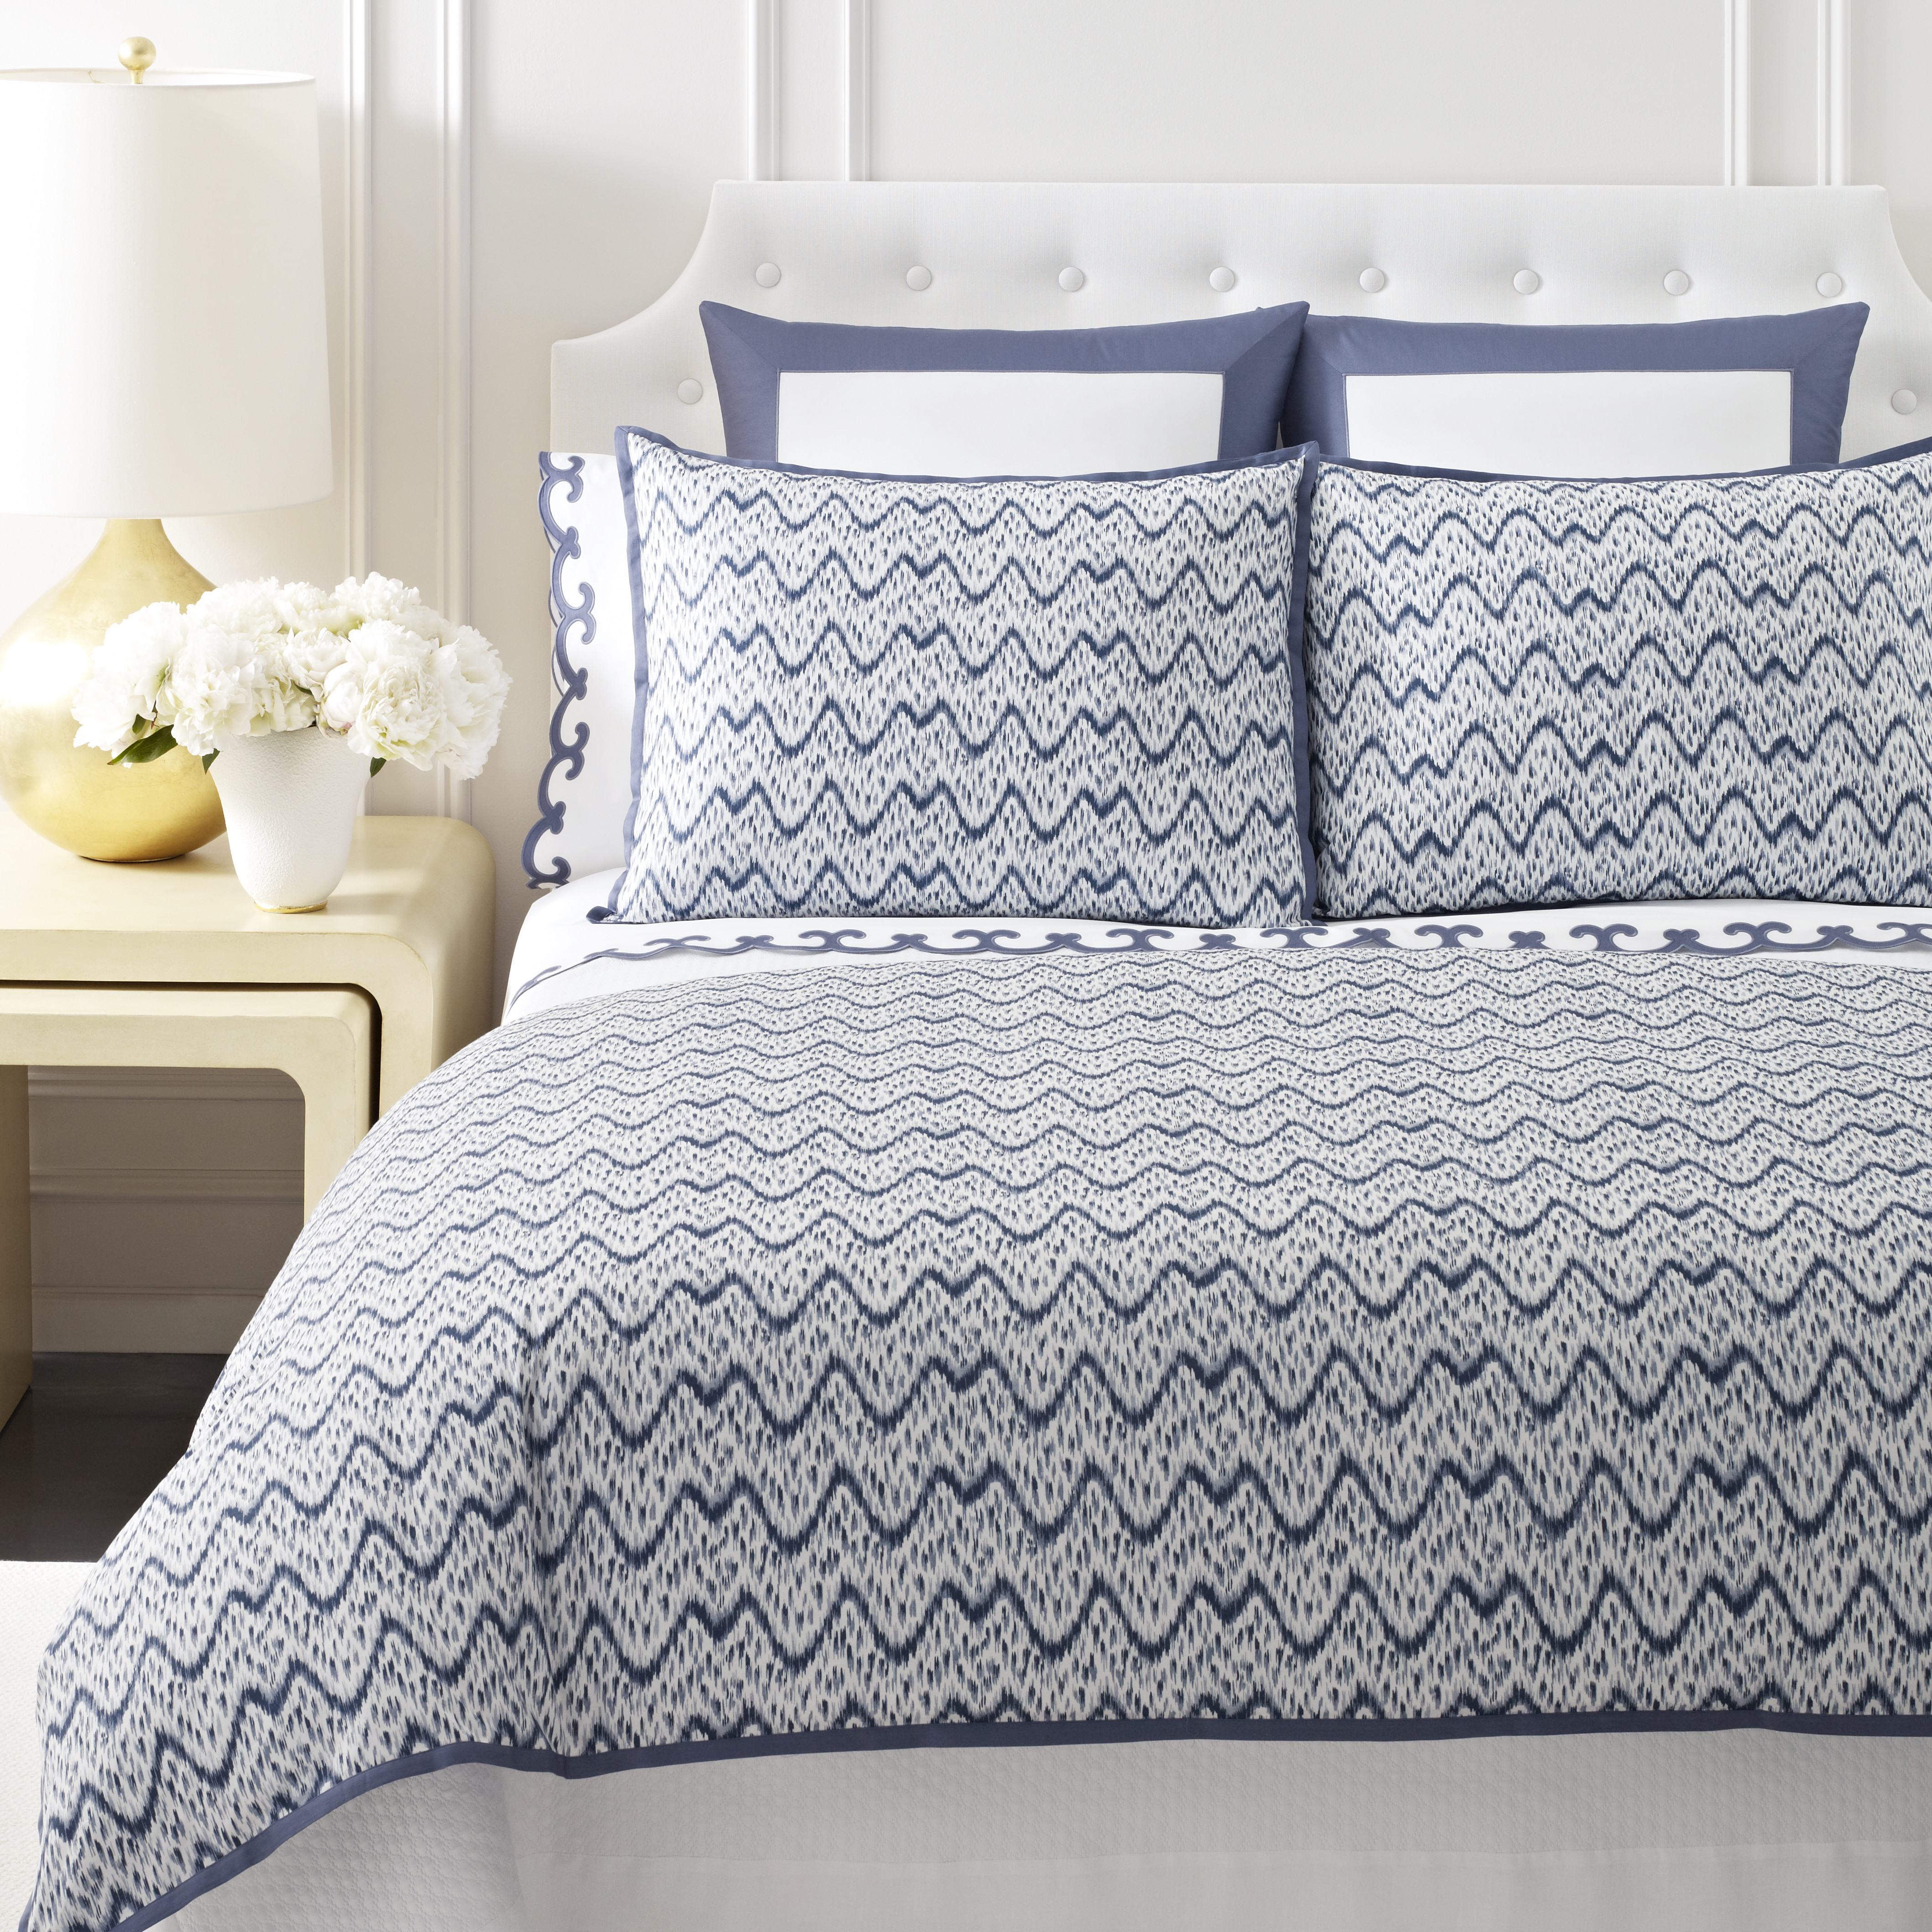 rqvxcmwmyyhp textile duvet bedding shanghai trading mound international urban group co as scallop covers page cover home product ltd layer set